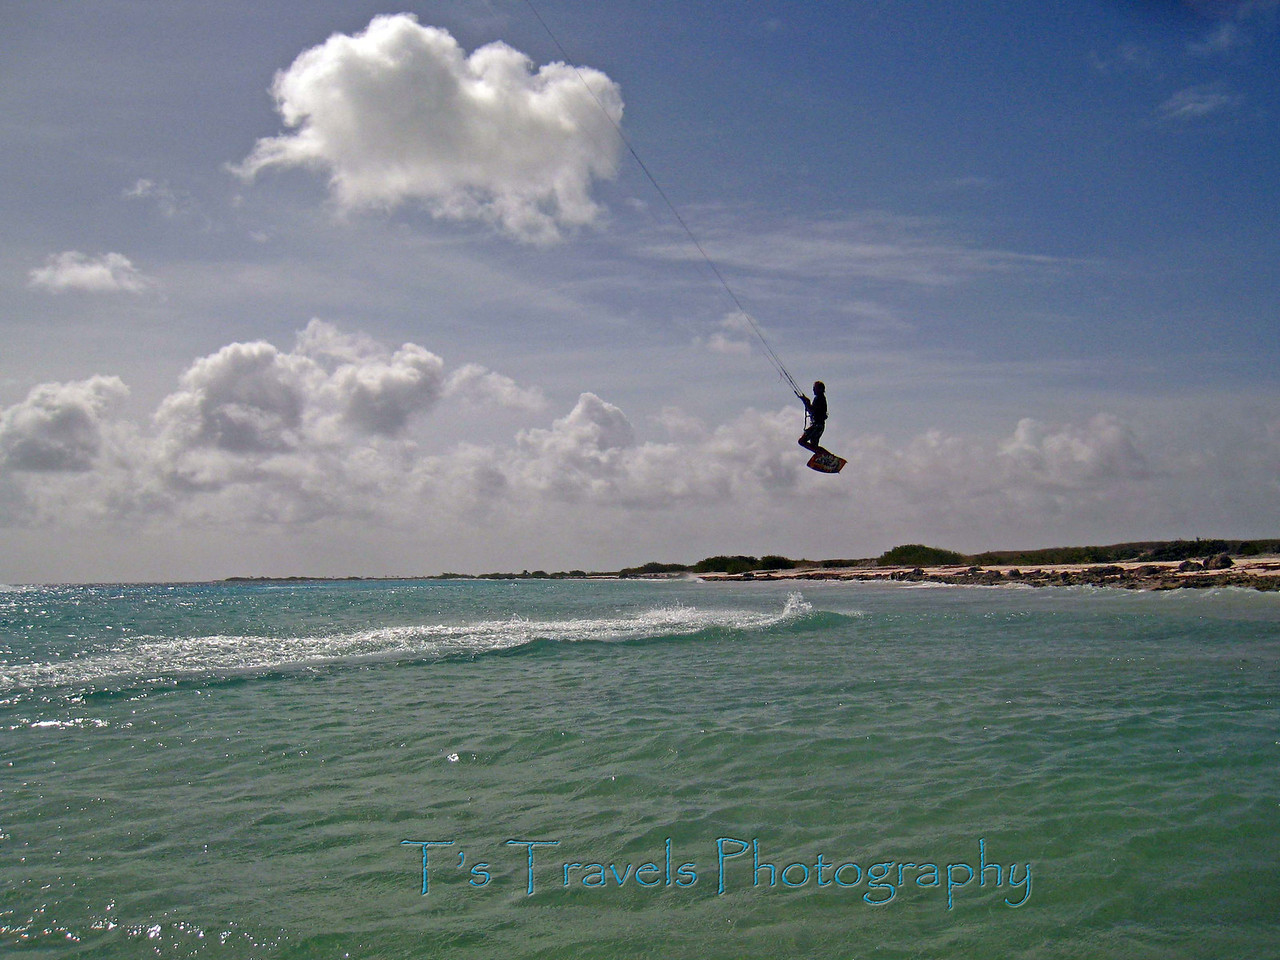 Kitesurfing on Bonaire